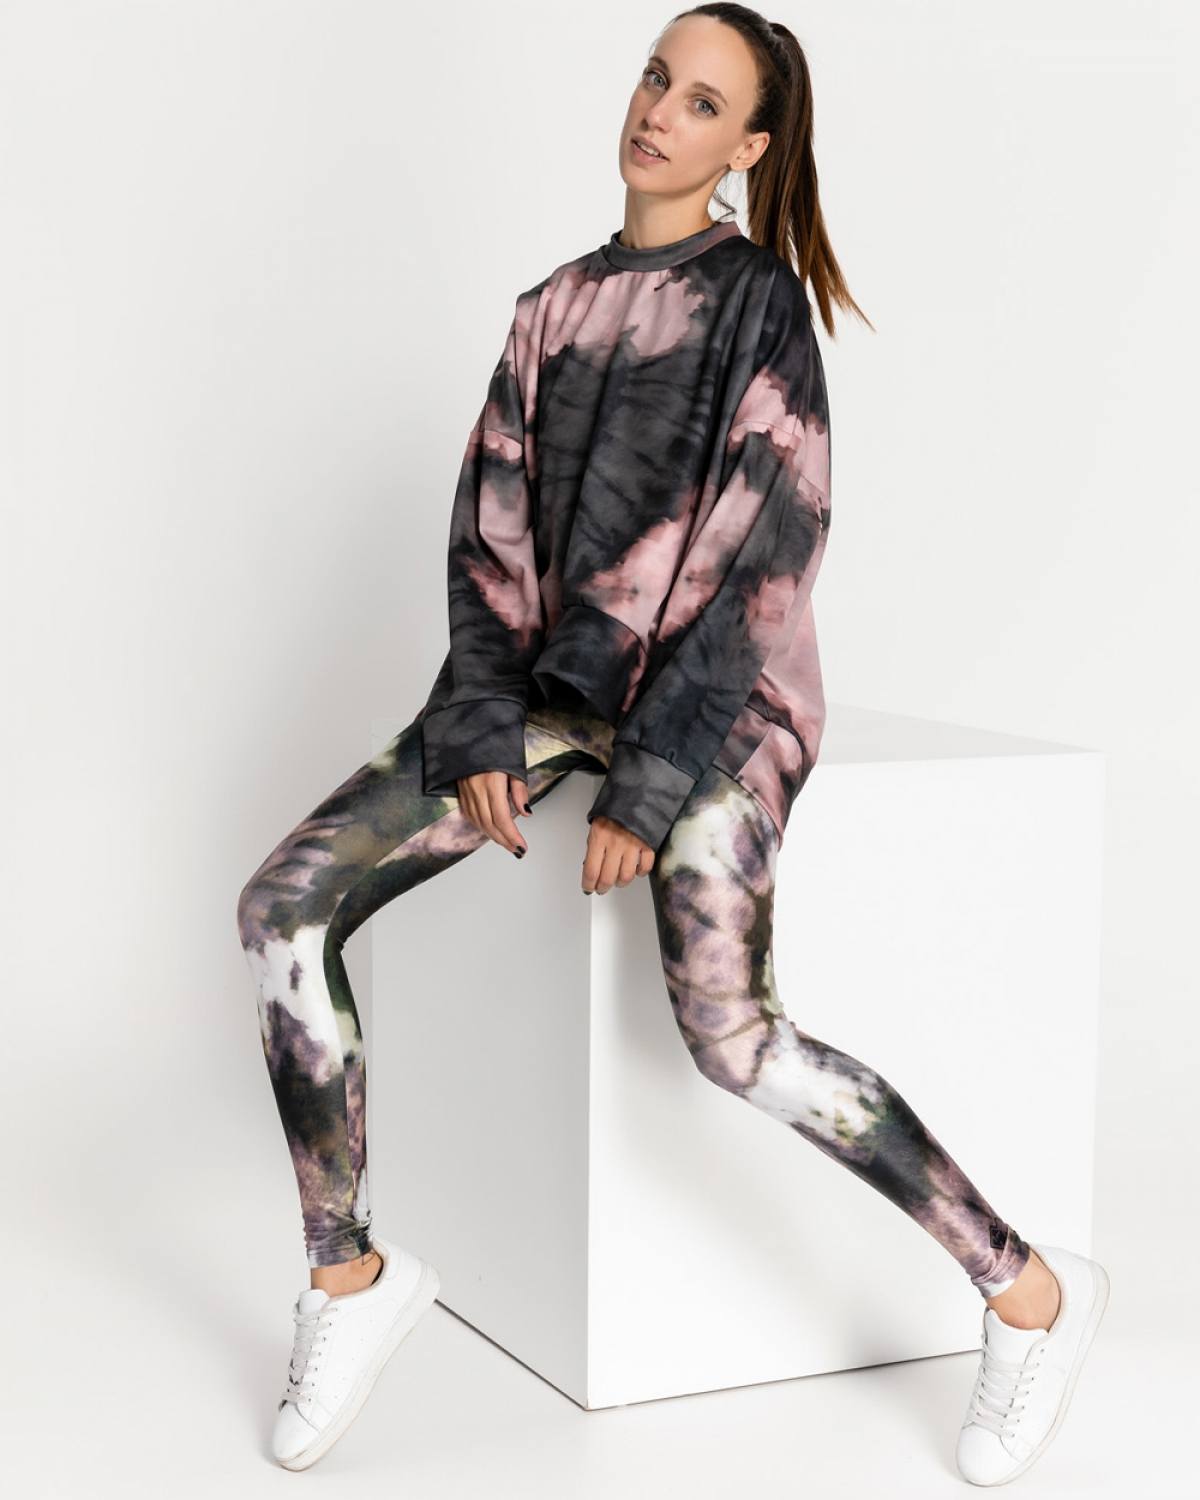 TieDie Inkblot Leggings